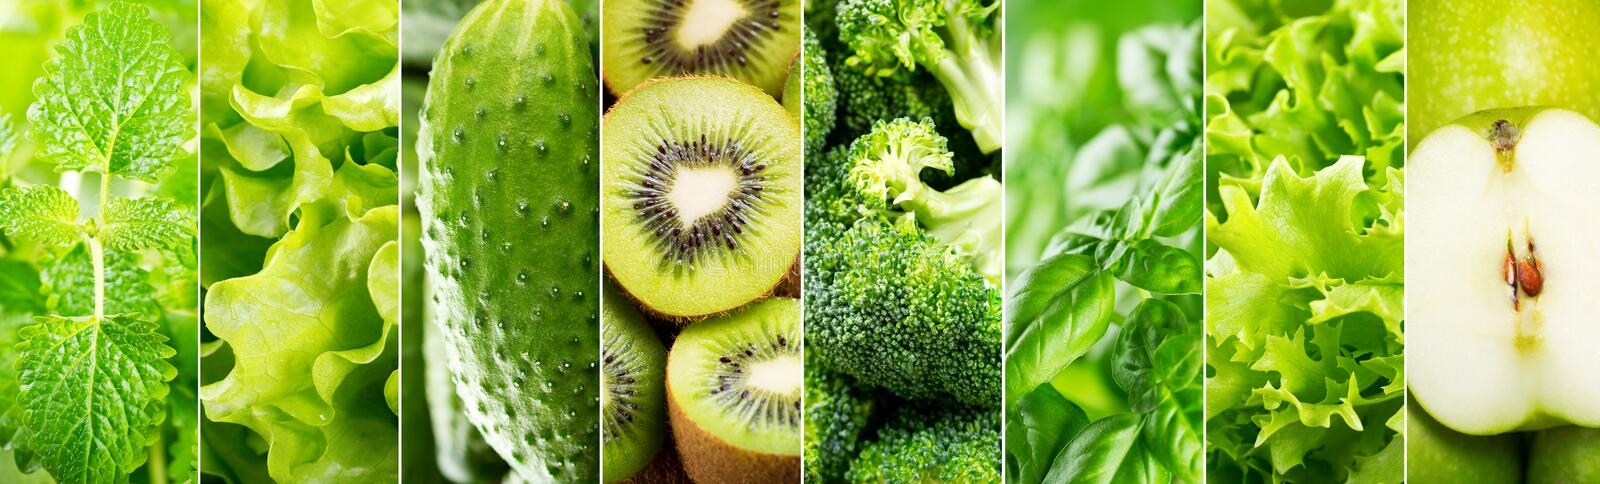 Collage of various green food stock photos